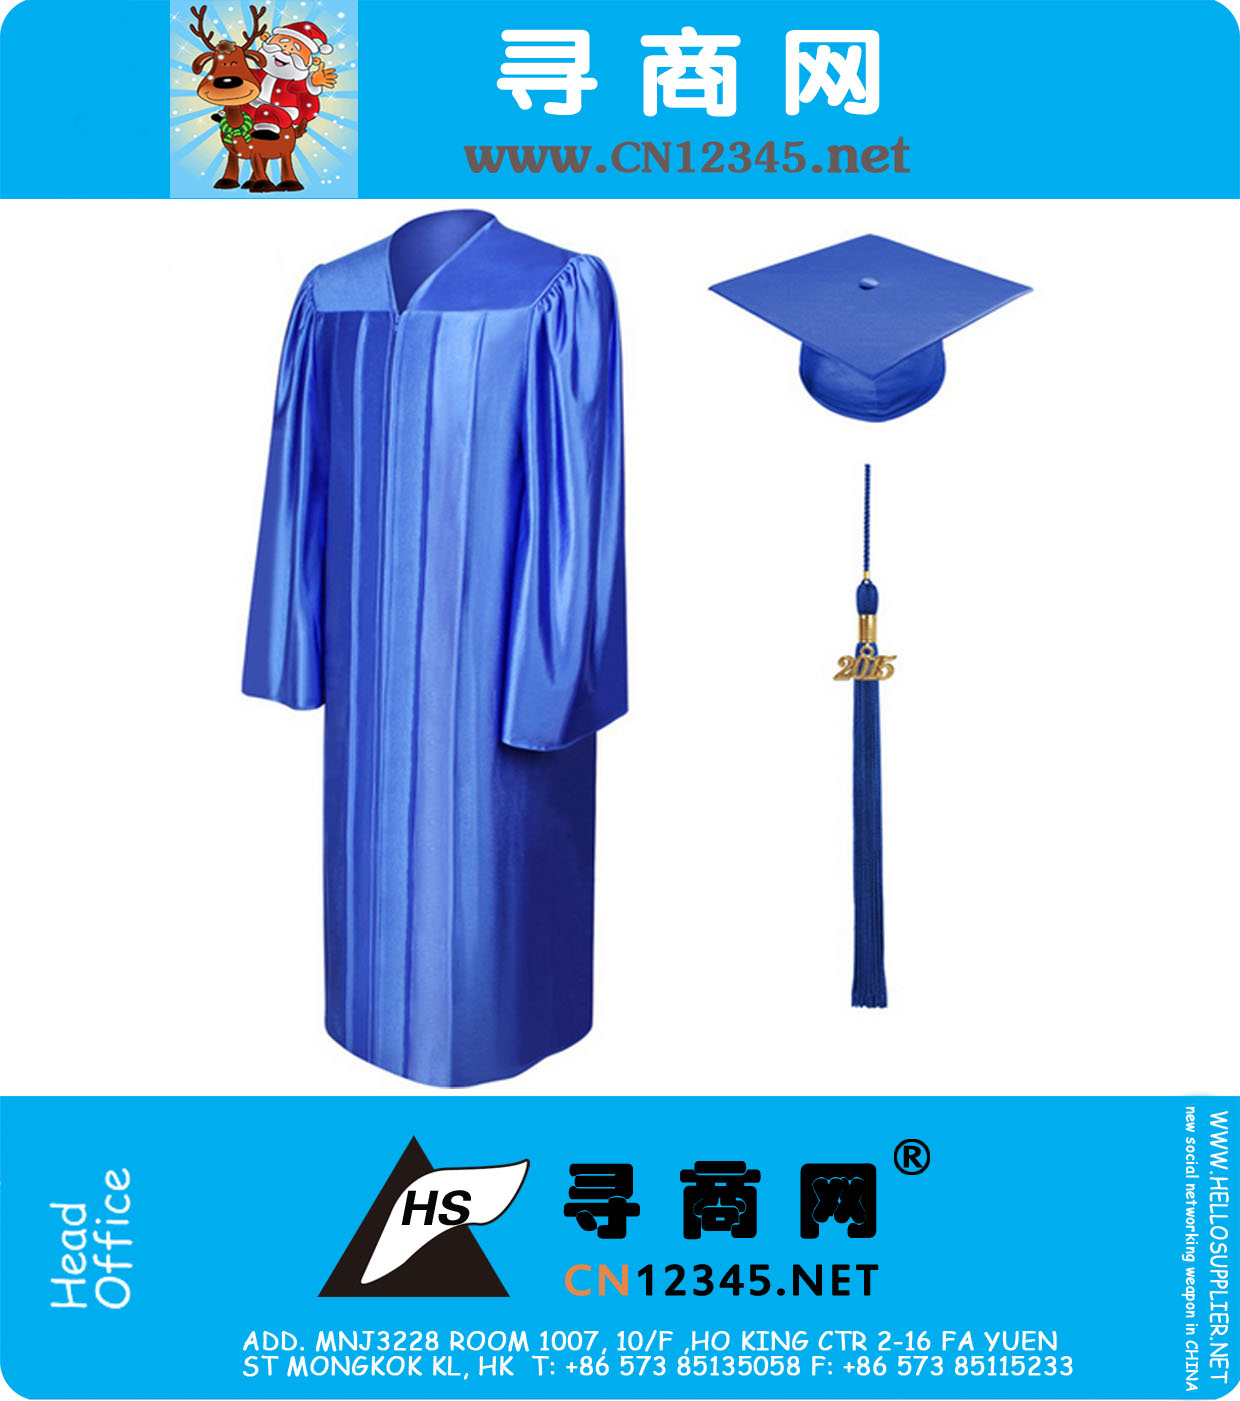 2016 Master Economy Shiny Royal Blue Graduation Gown Cap and Tassel ...